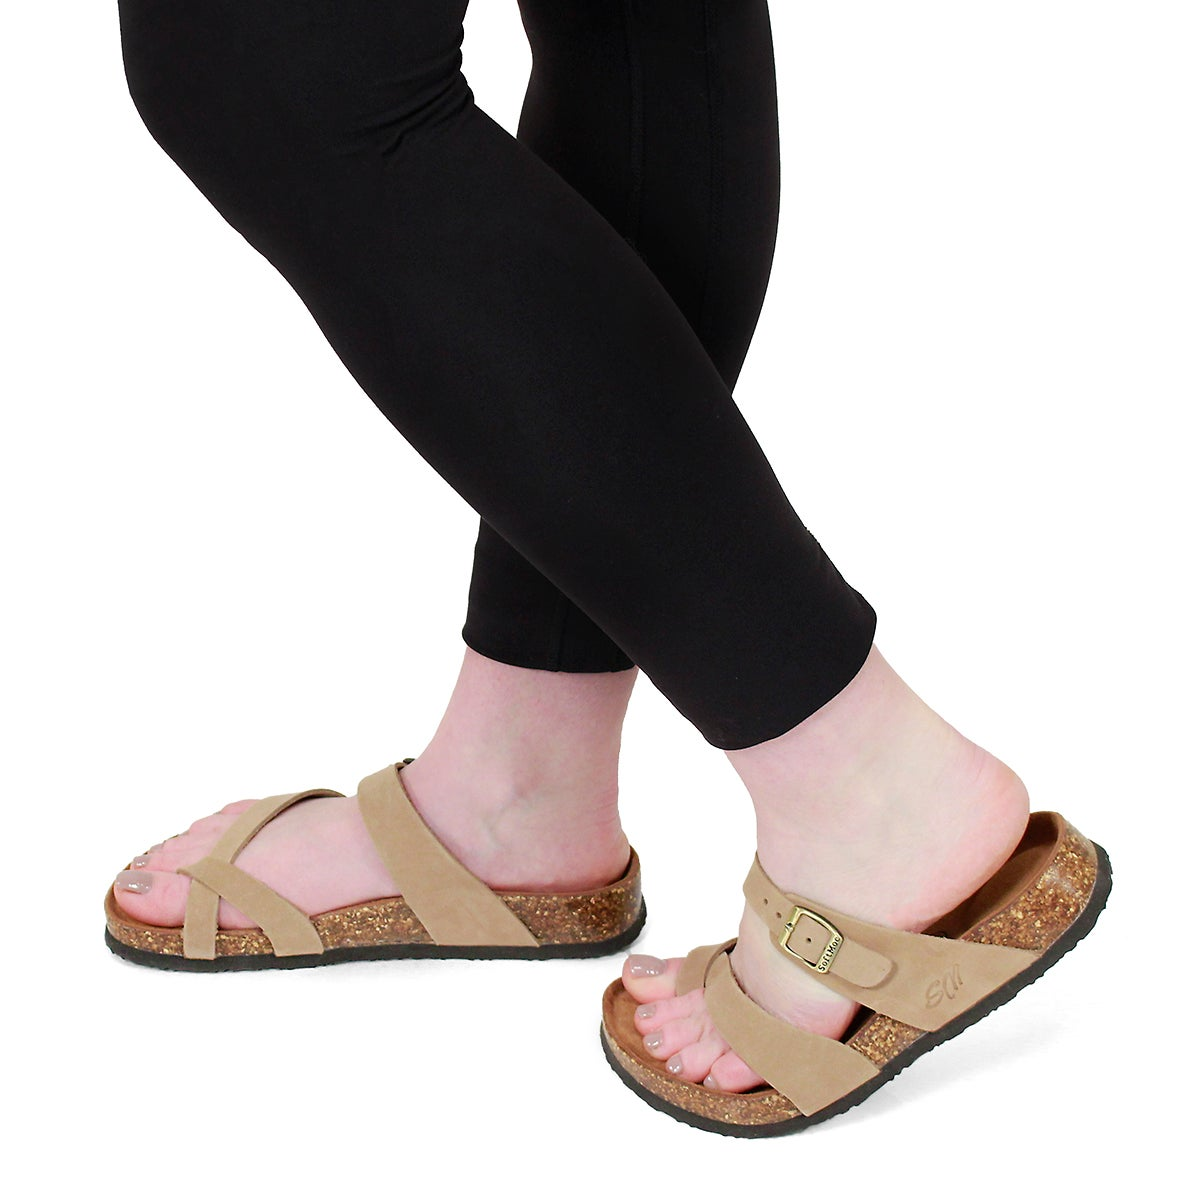 Lds Alicia 5 taupe memory foam sandal